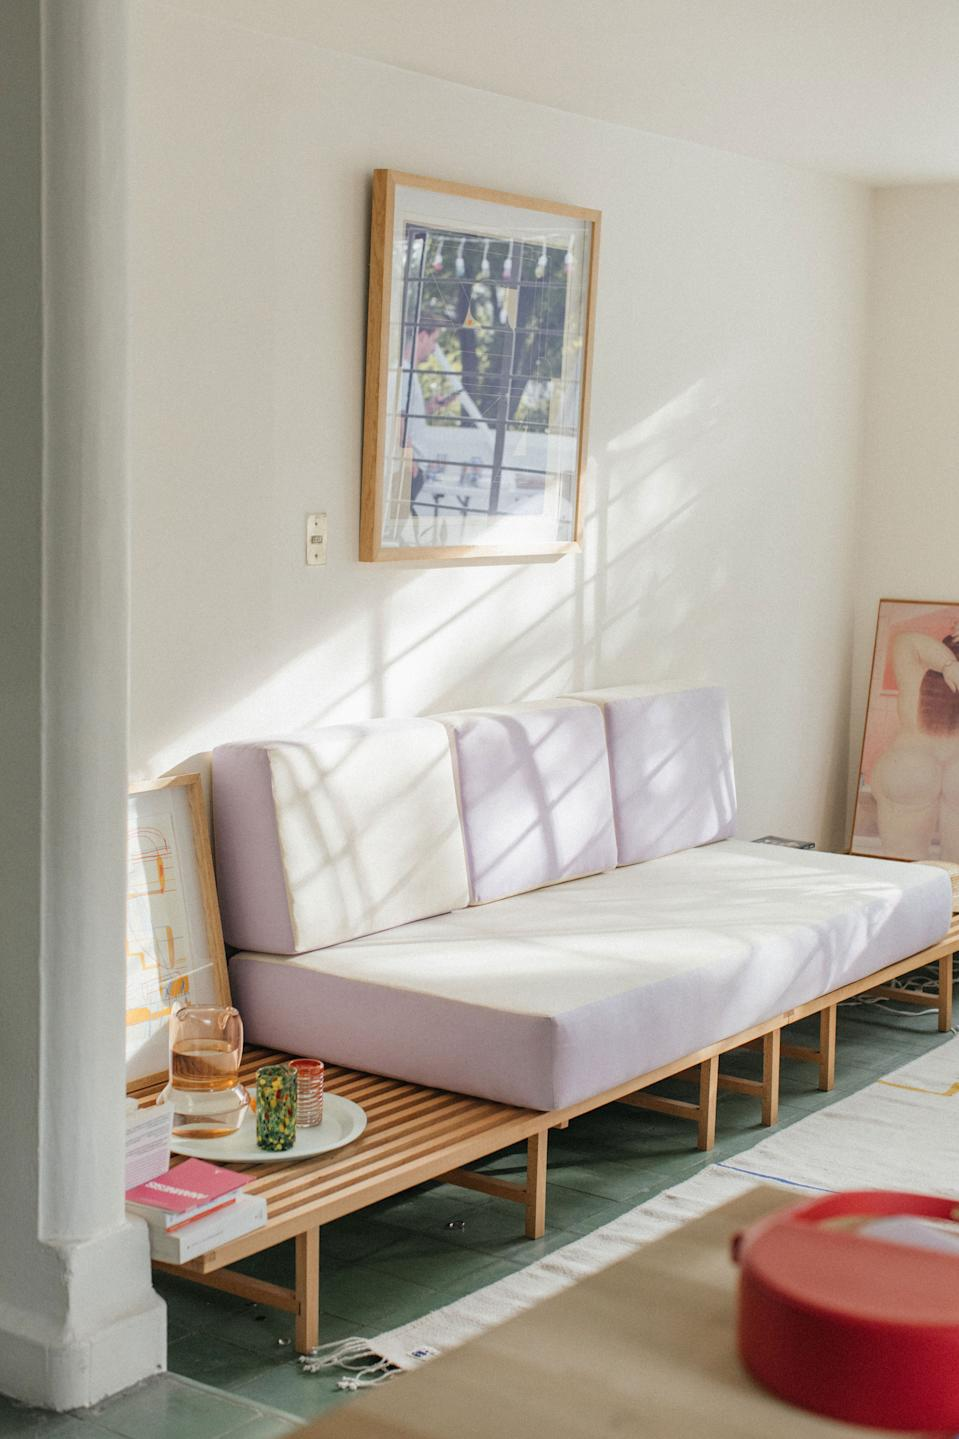 """<div class=""""caption""""> """"When it came time to furnish the apartment, we wanted to make the most of the space and most of the vintage or new sofas were not suitable,"""" says Charles. So, the couple took inspiration from a Charlotte Perriand exhibition and commissioned a friend, <a href=""""https://www.instagram.com/franprices/?hl=en"""" rel=""""nofollow noopener"""" target=""""_blank"""" data-ylk=""""slk:Lucyle Wagner,"""" class=""""link rapid-noclick-resp"""">Lucyle Wagner,</a> to craft the piece. """"To give a Mexican touch, we chose the color Lila. Indeed, at the beginning of each spring, the jacaranda trees bloom and flood Mexico City with their purple flowers."""" </div>"""